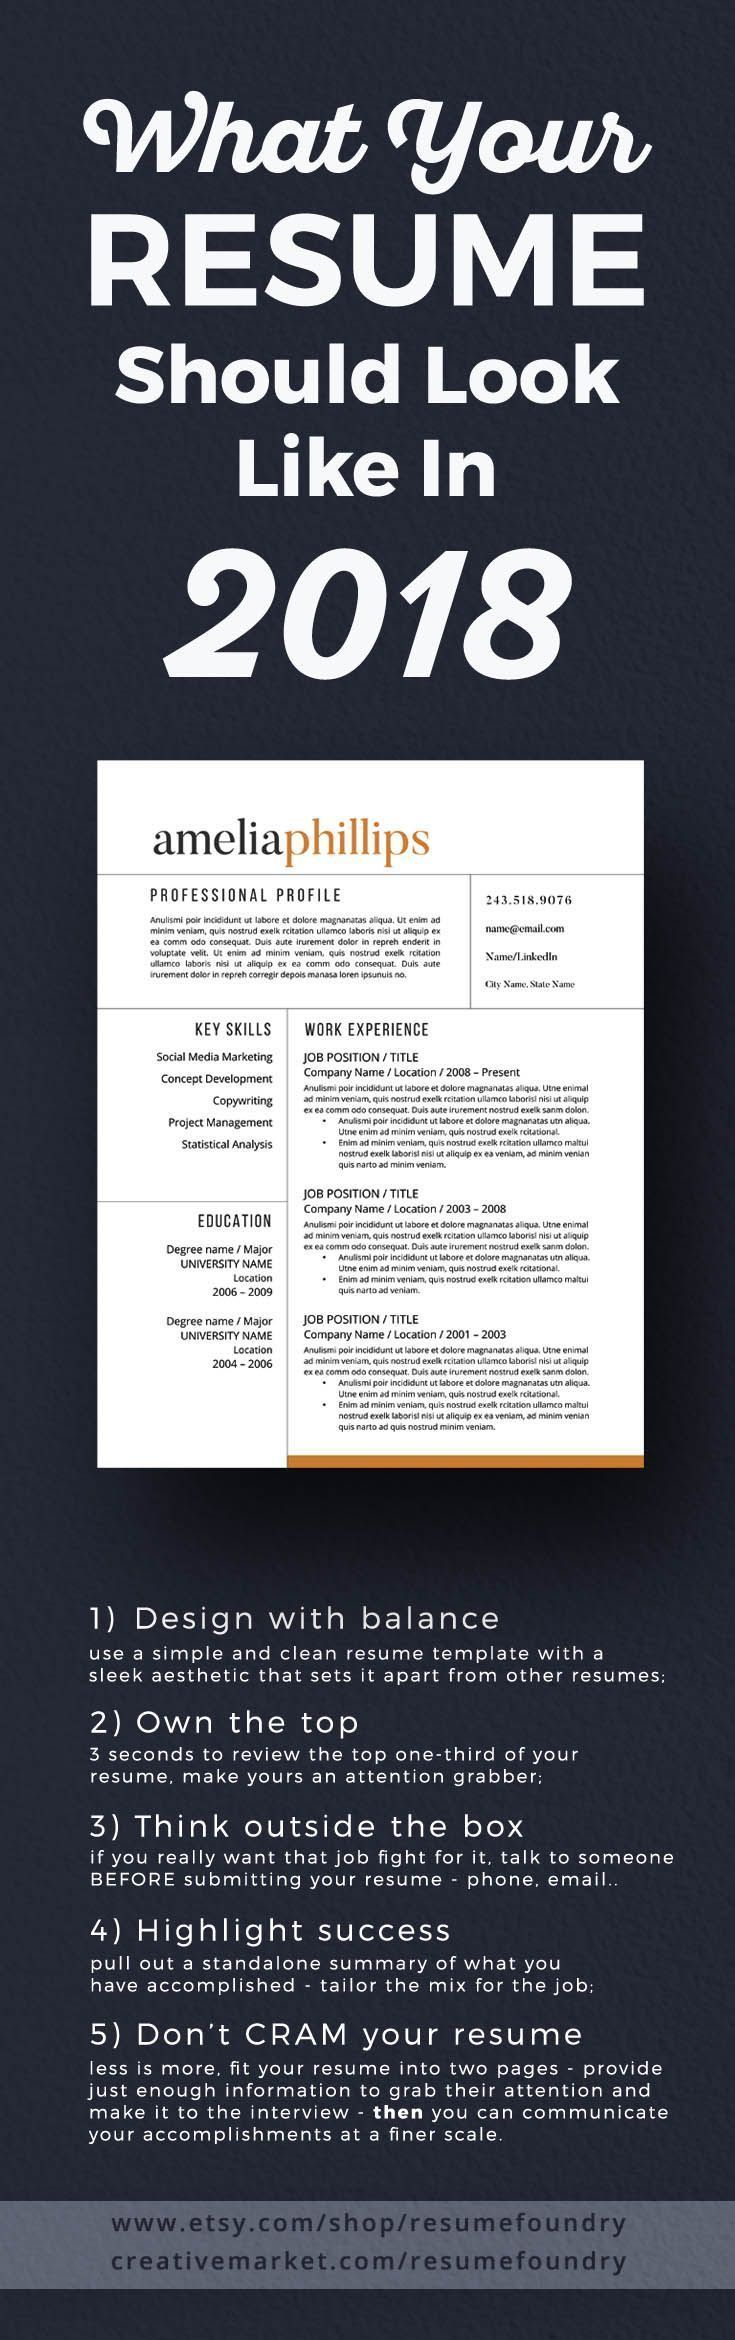 Resume Design : 5 tips to transform your resume to 2018. Check out ...